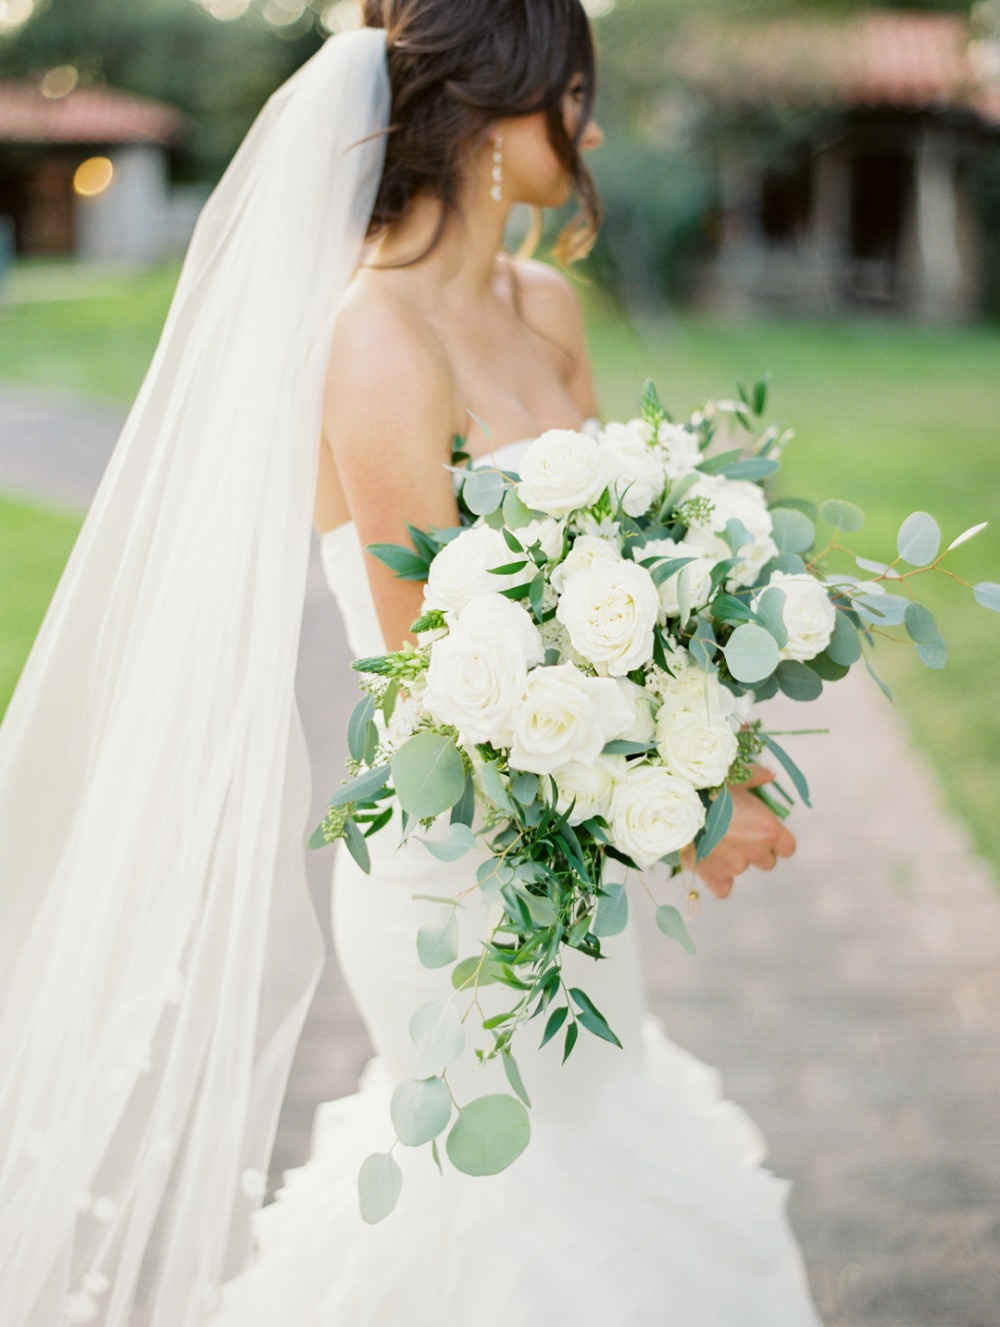 A Classic White and Greenery Wedding with Rustic Charm